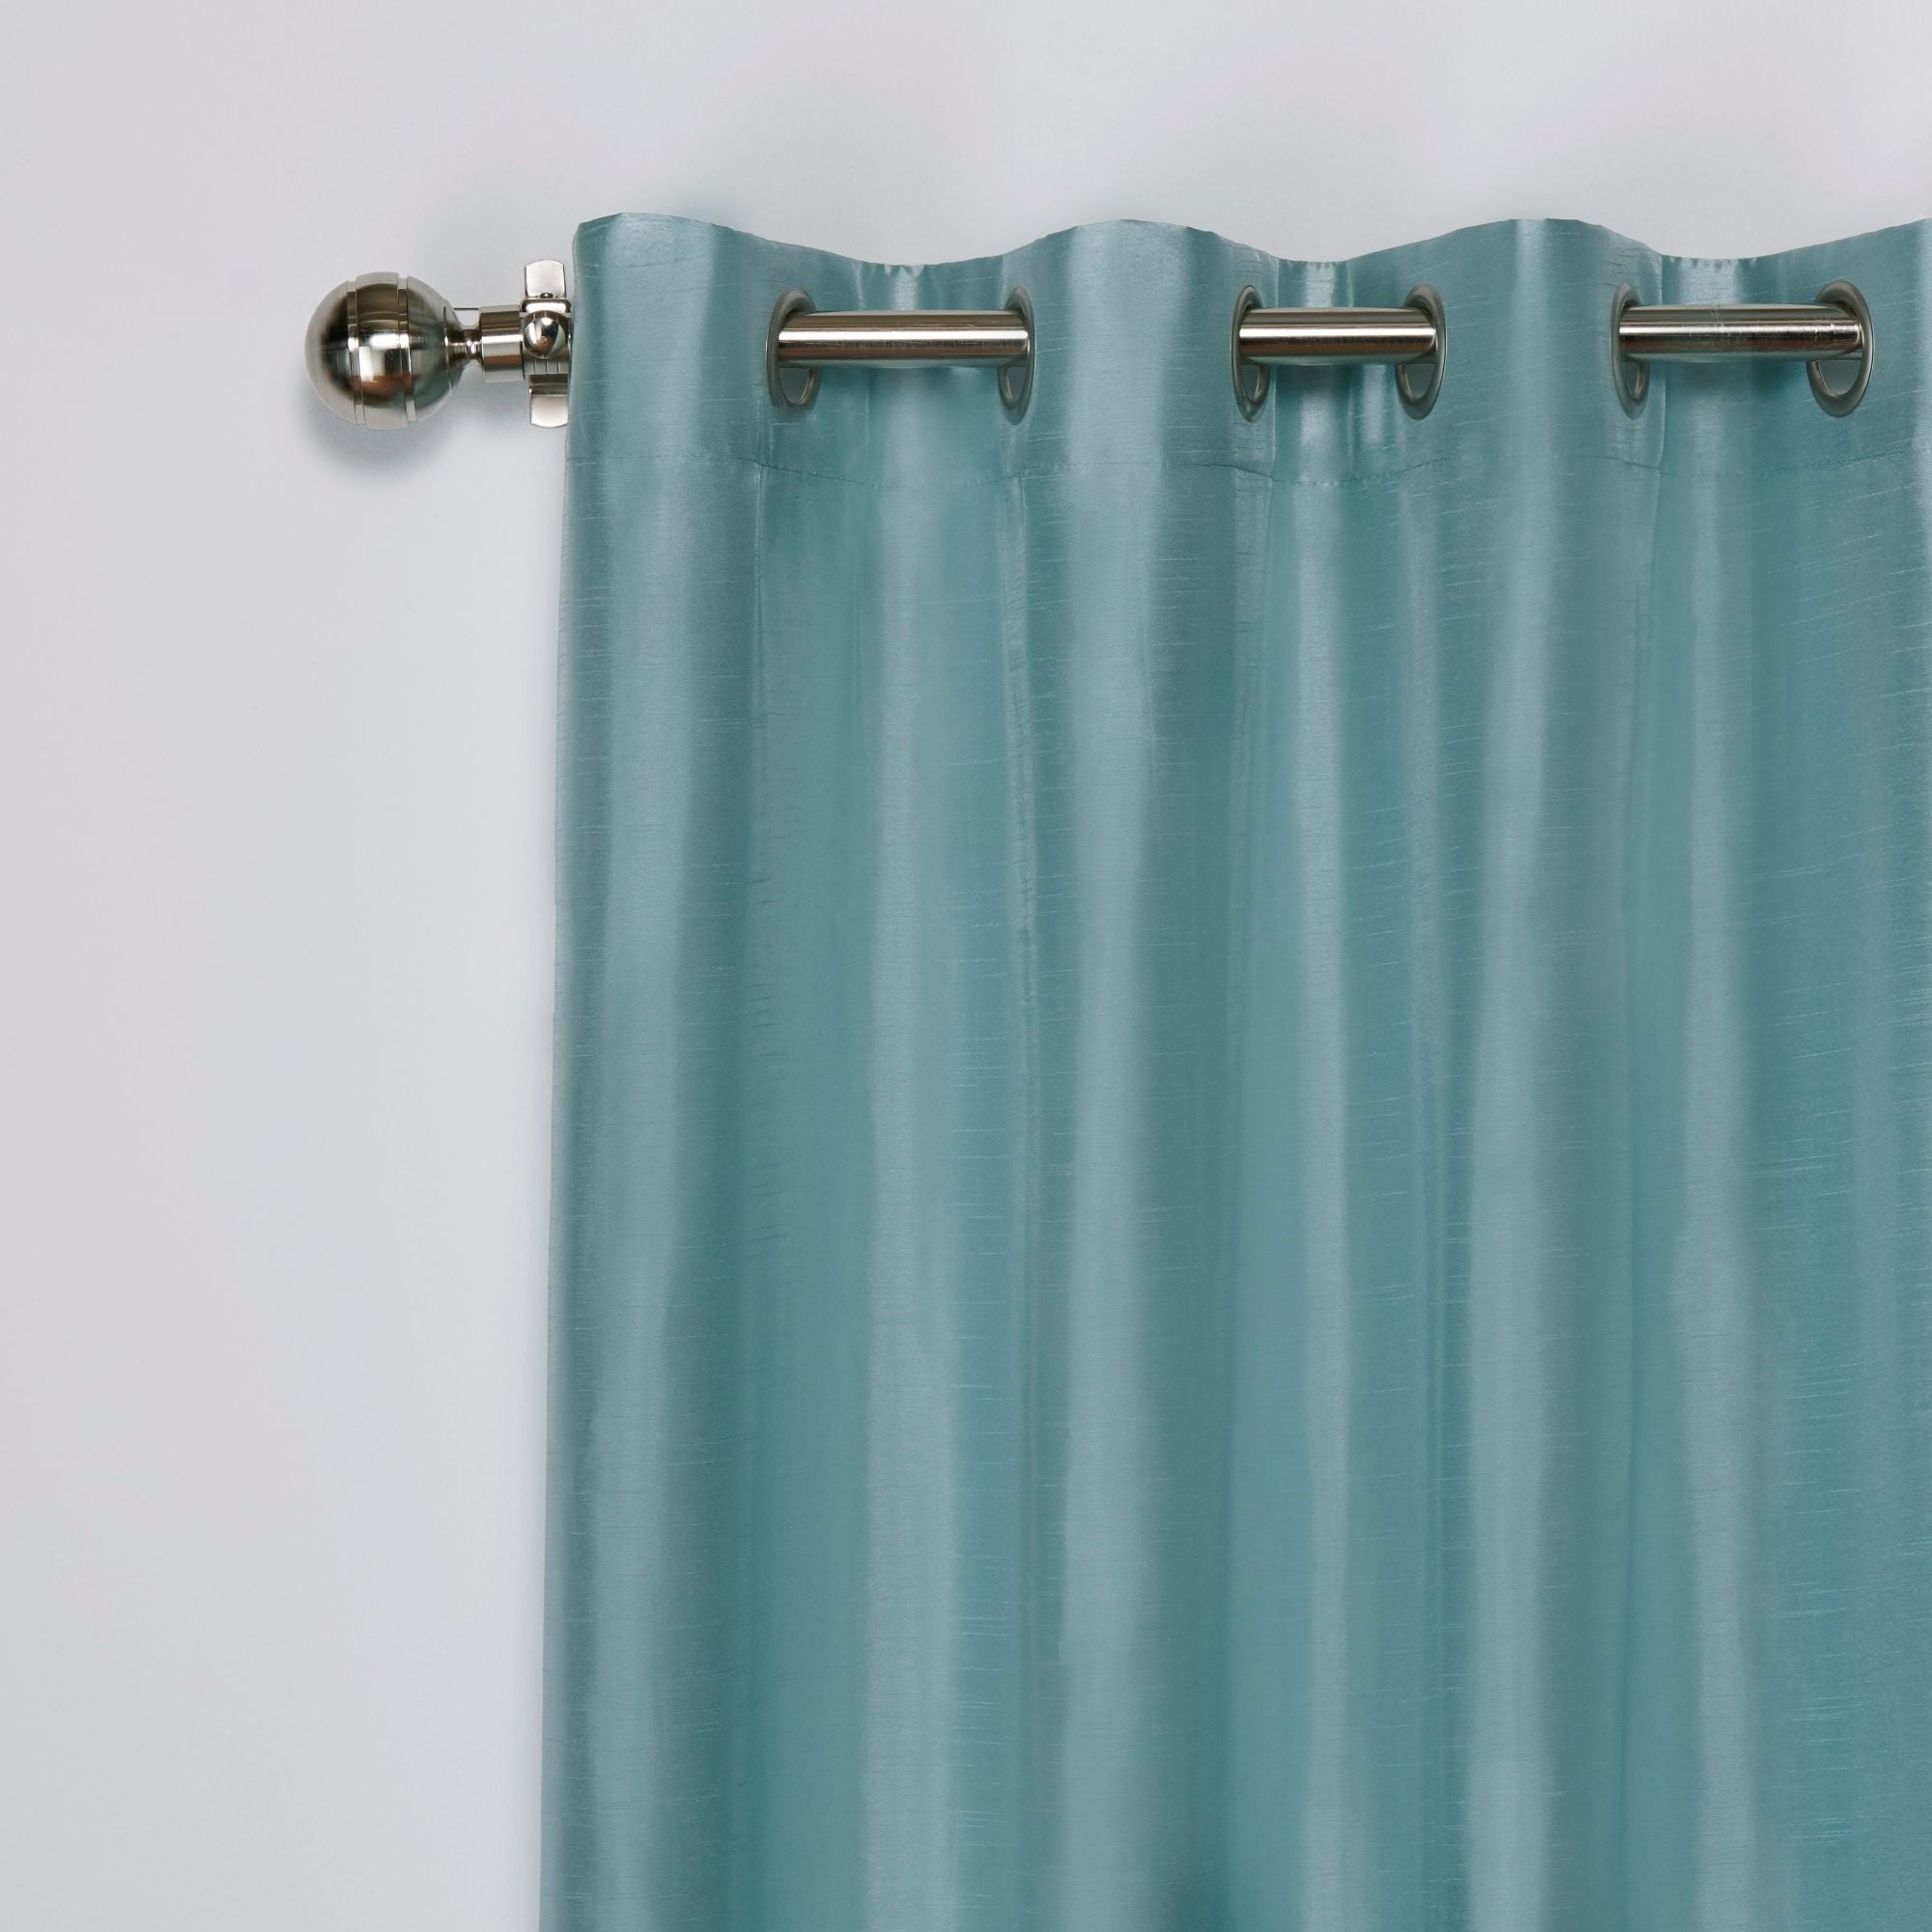 Copper Grove Fulgence Faux Silk Grommet Top Panel Curtains – N/ A With Copper Grove Fulgence Faux Silk Grommet Top Panel Curtains (View 15 of 20)